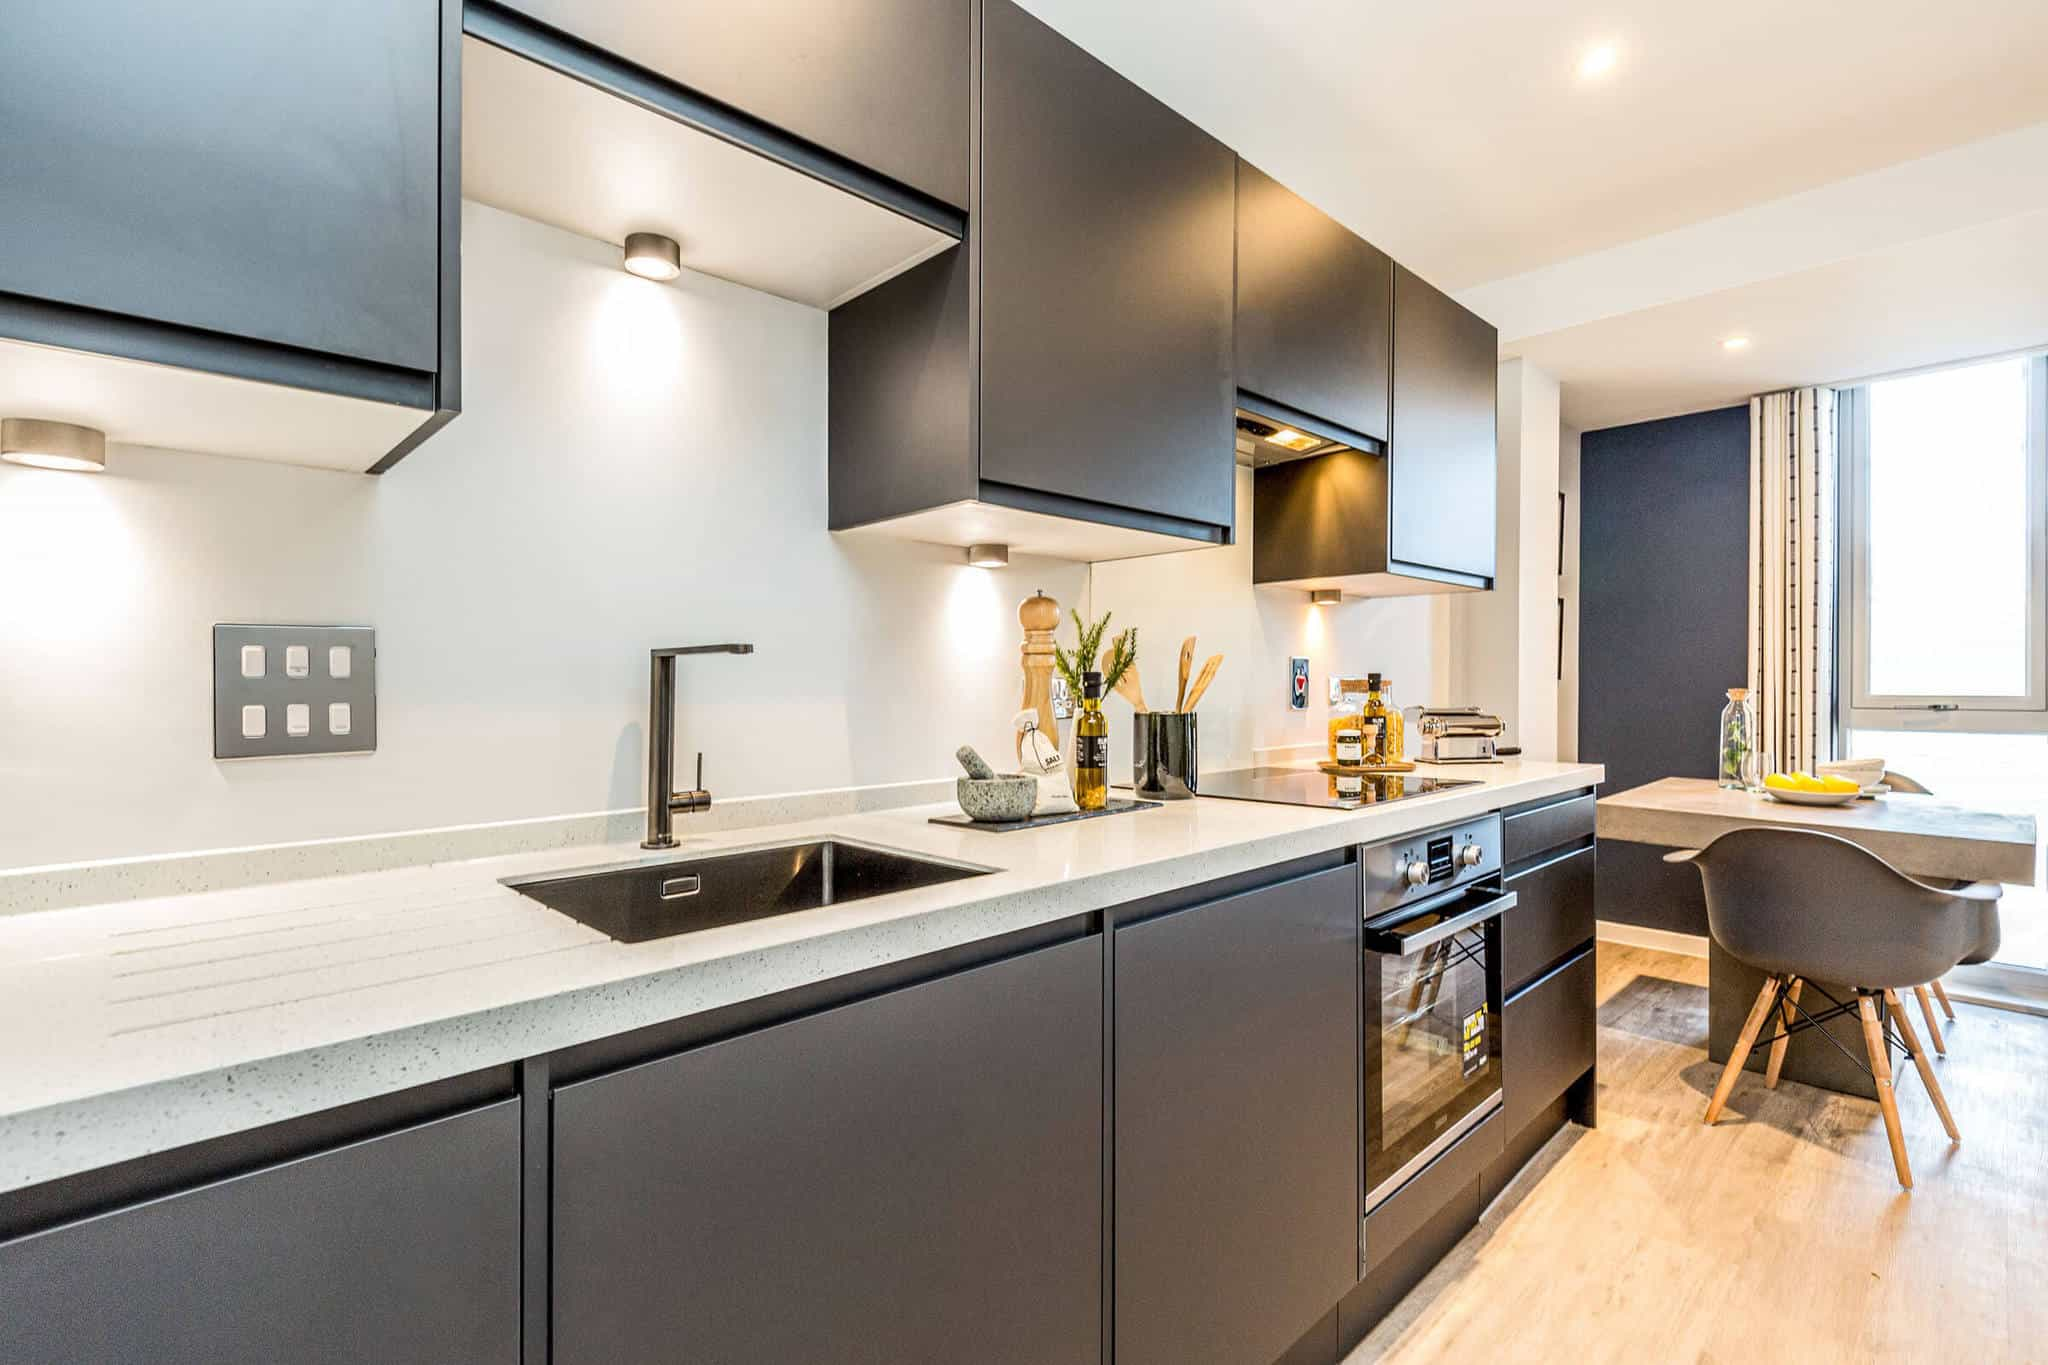 Interior Commercial to Residential Property Conversion Apartment